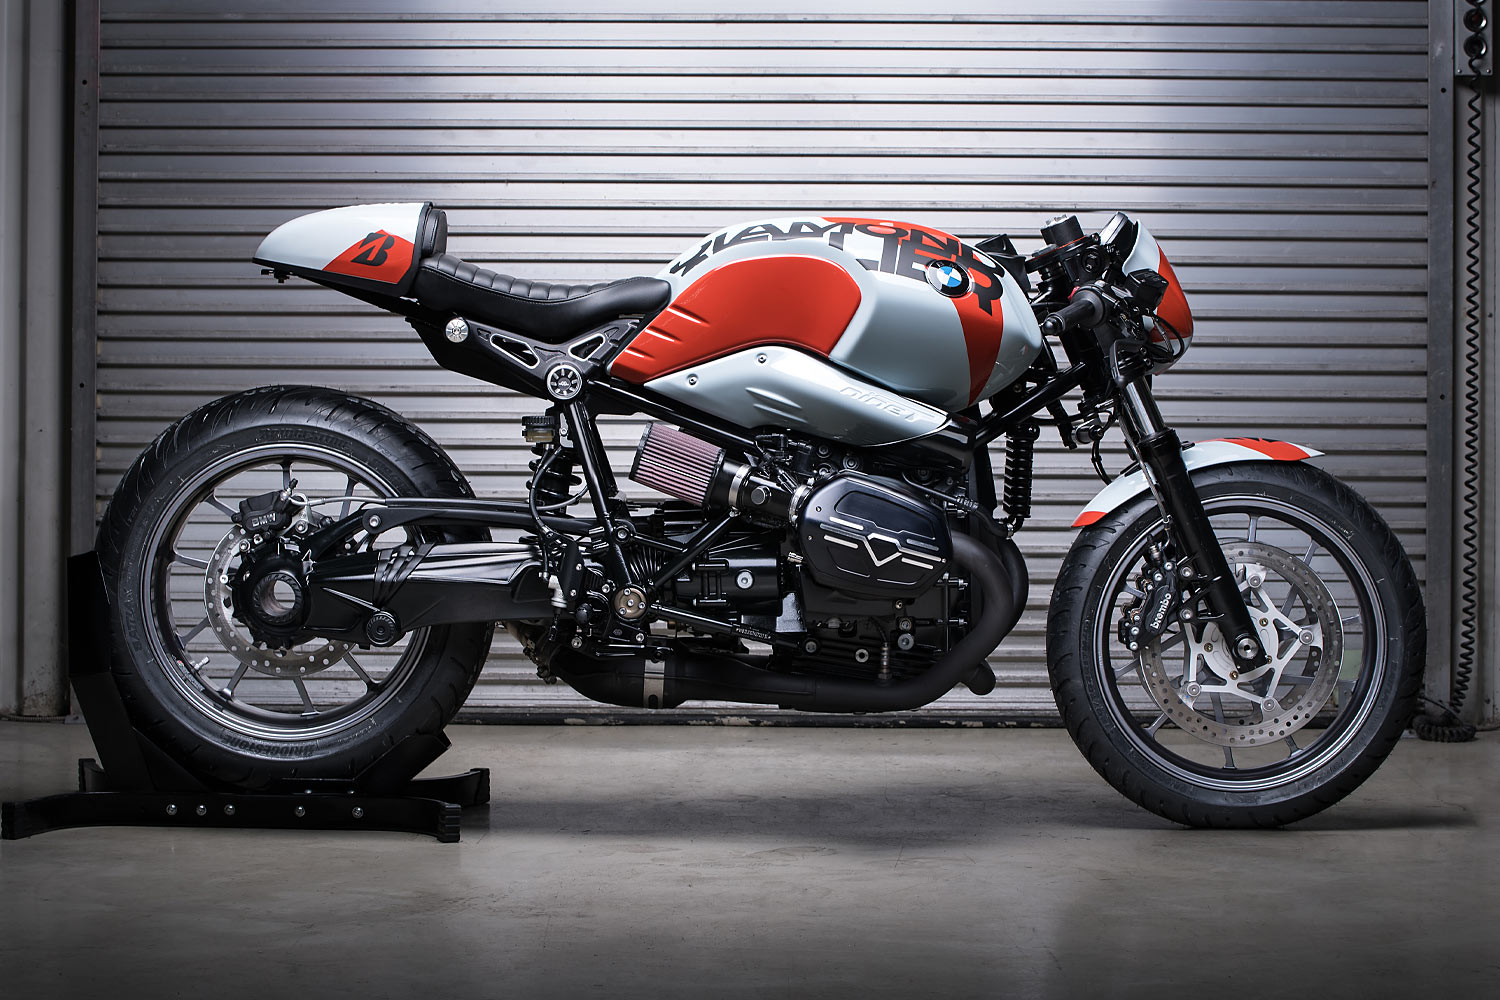 Diamond Atelier Bridgestone R nineT EICMA Special detailed